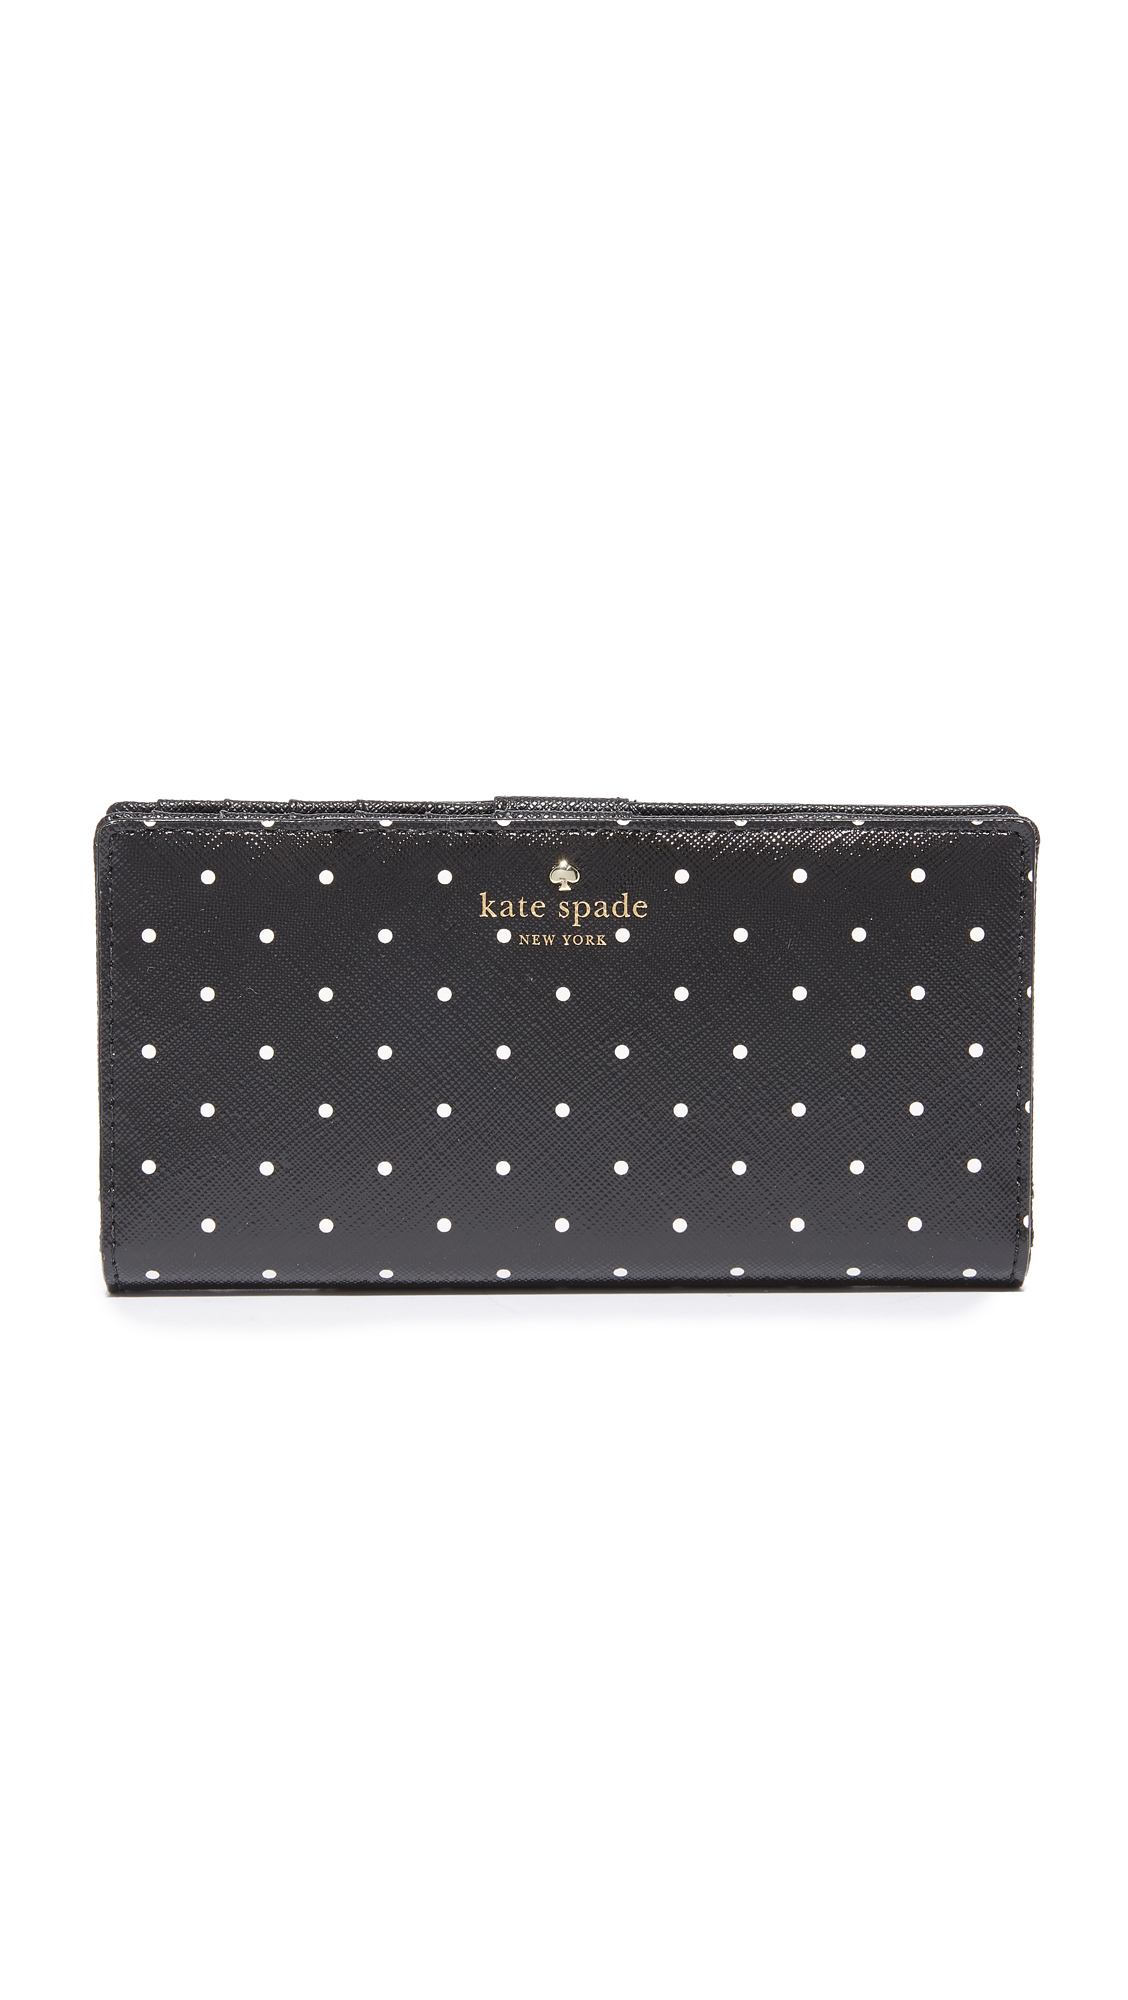 Kate Spade New York Brooks Drive Stacy Wallet - Black/Cream